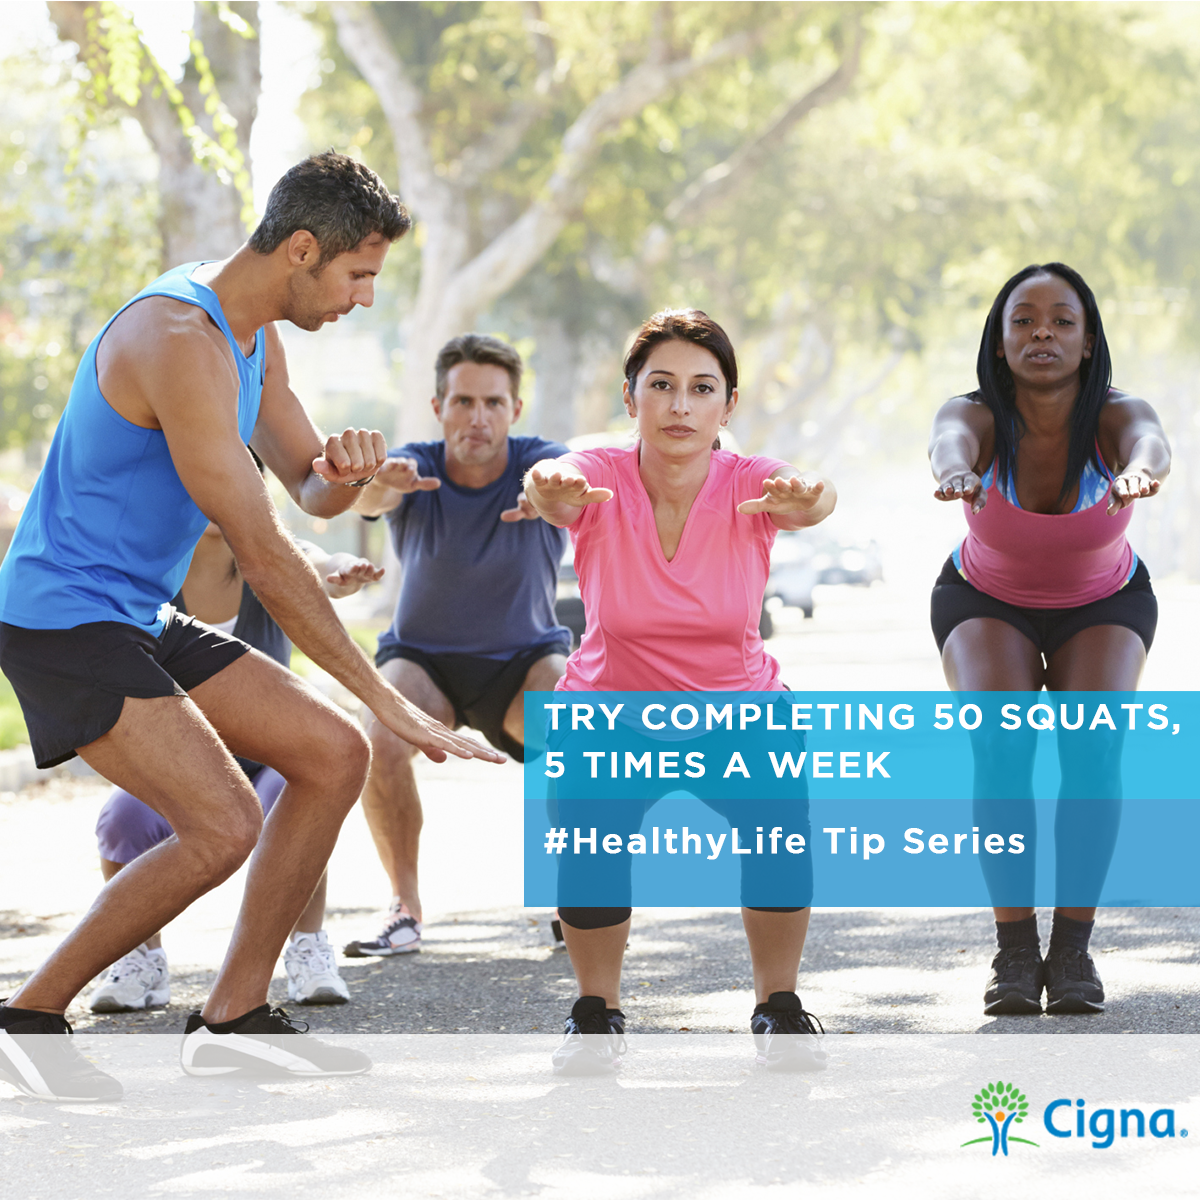 #HealthyLife Tip - Have you tried #squats? Try adding 25 squats, 5X a week to your #exercise routine.